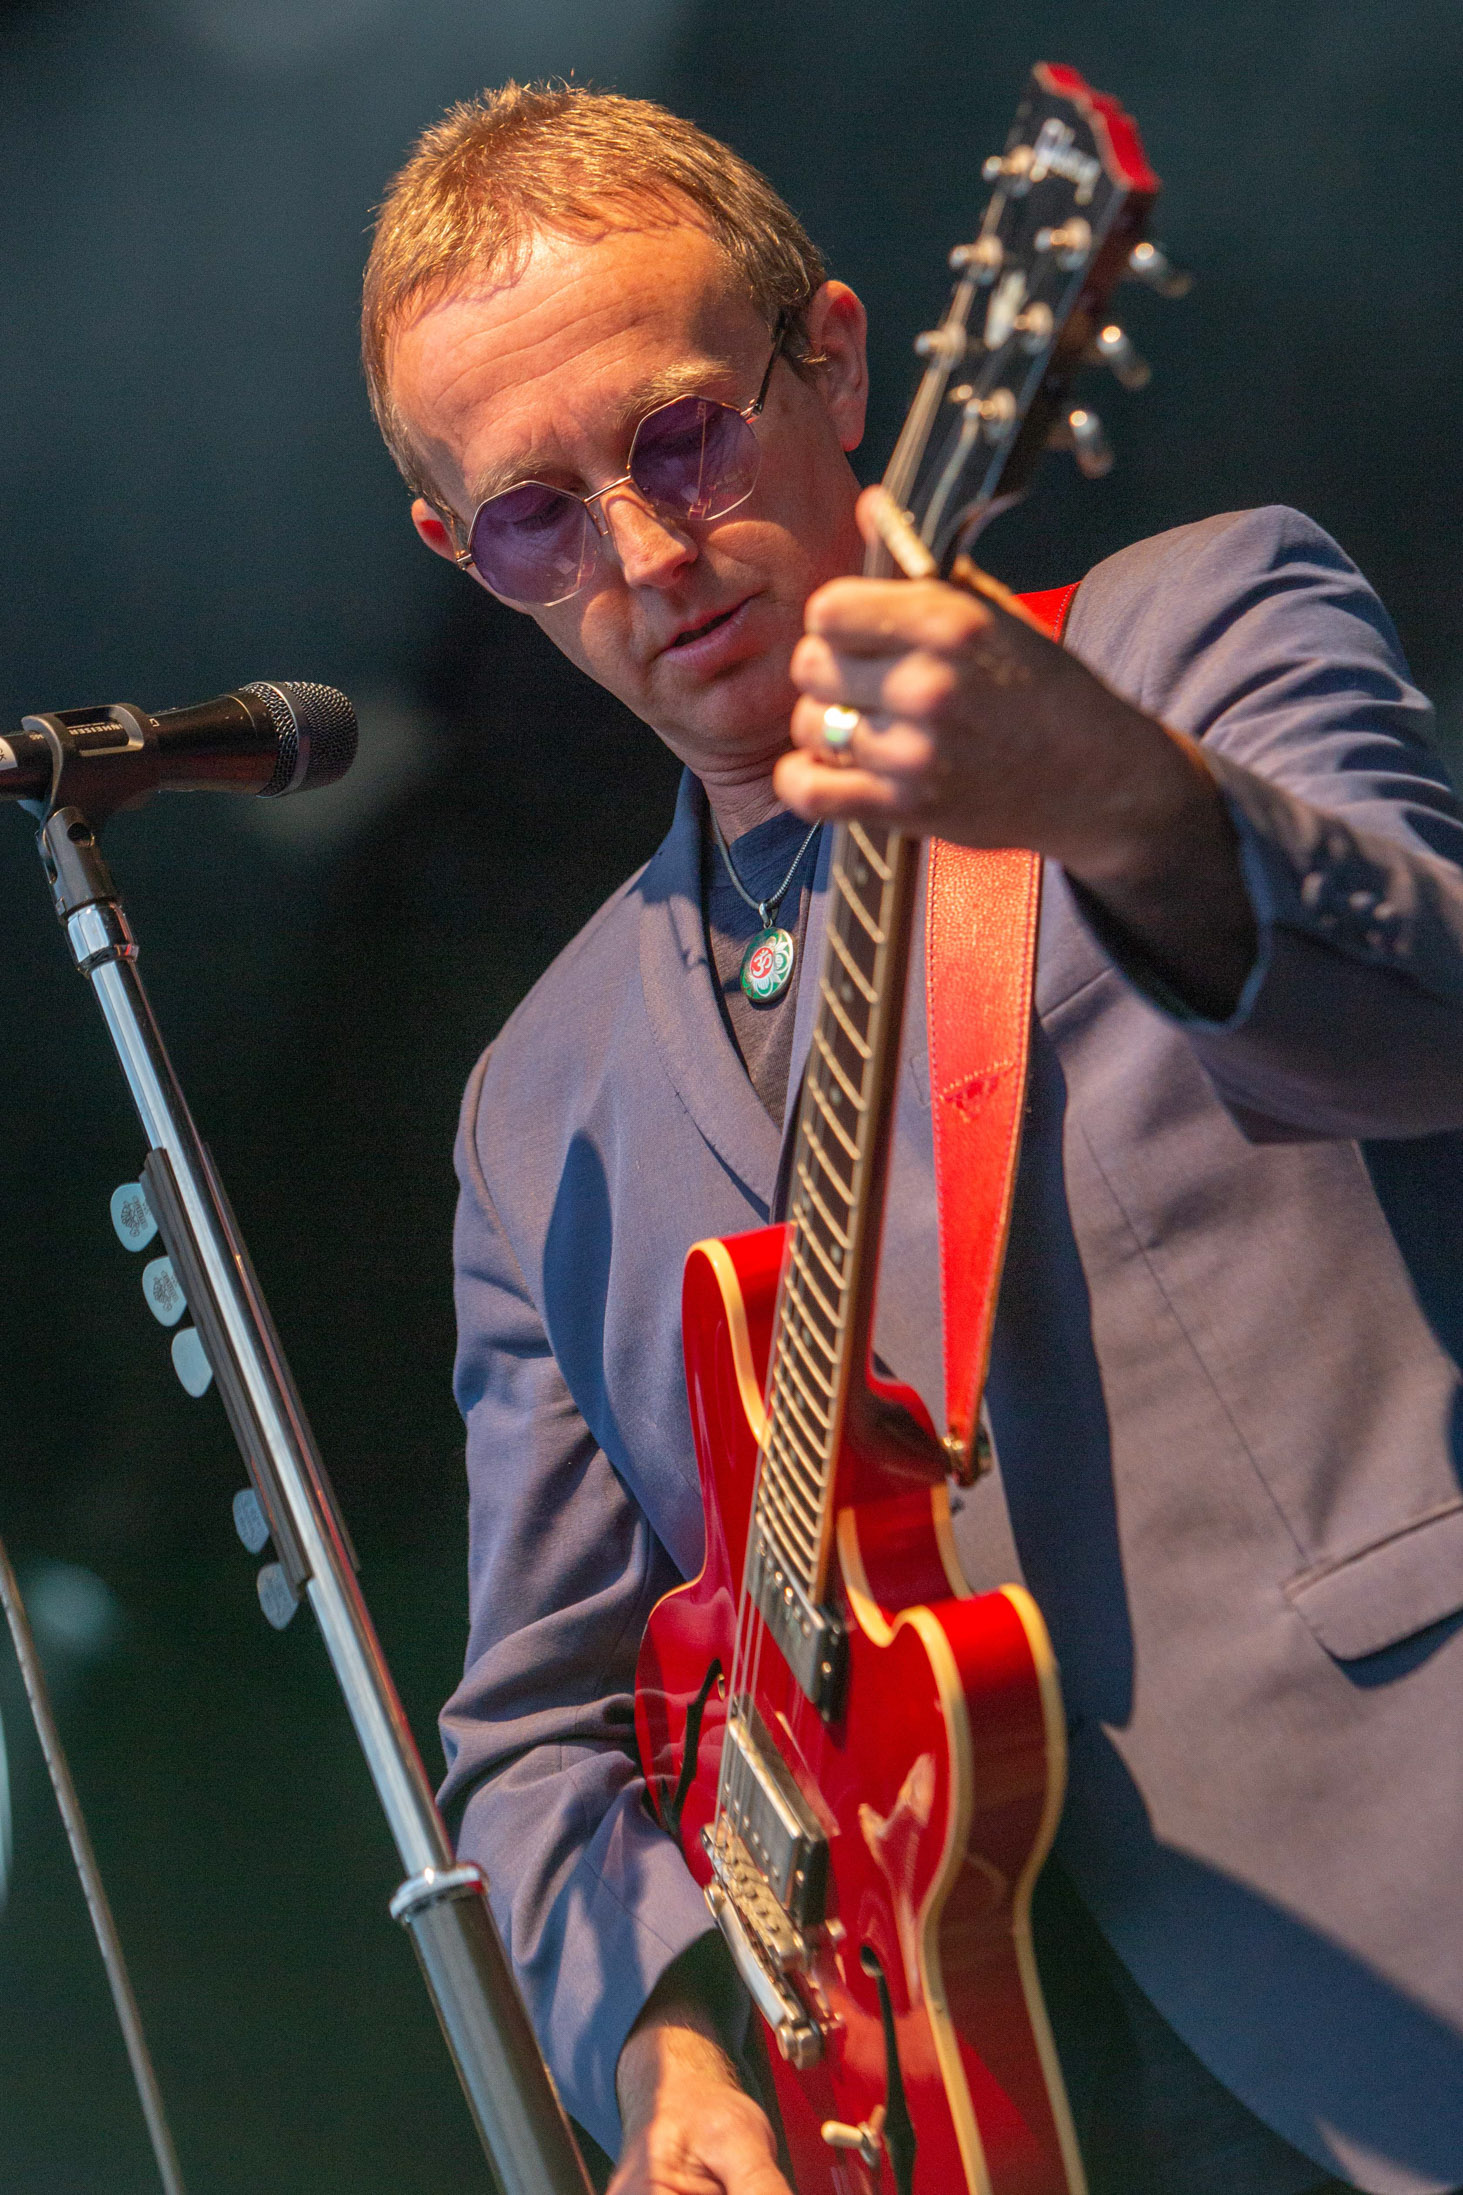 Steve Cradock Guitarist Concert Photography